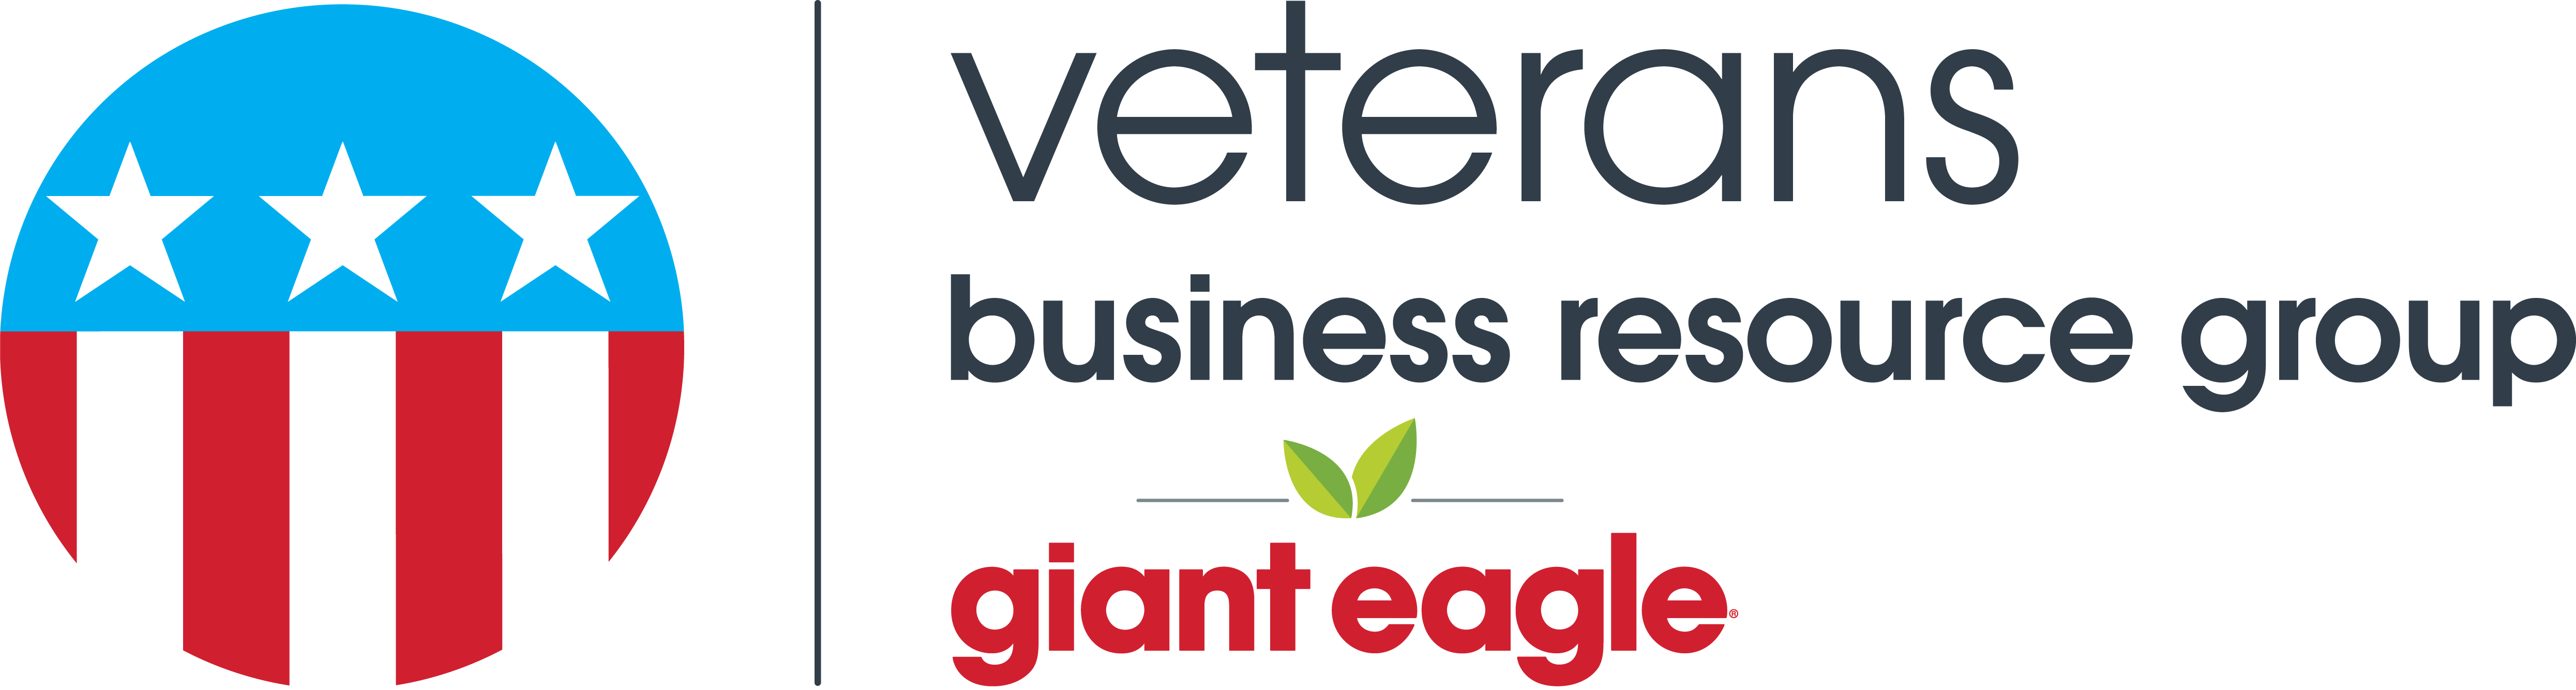 Veterans Business Resource Group